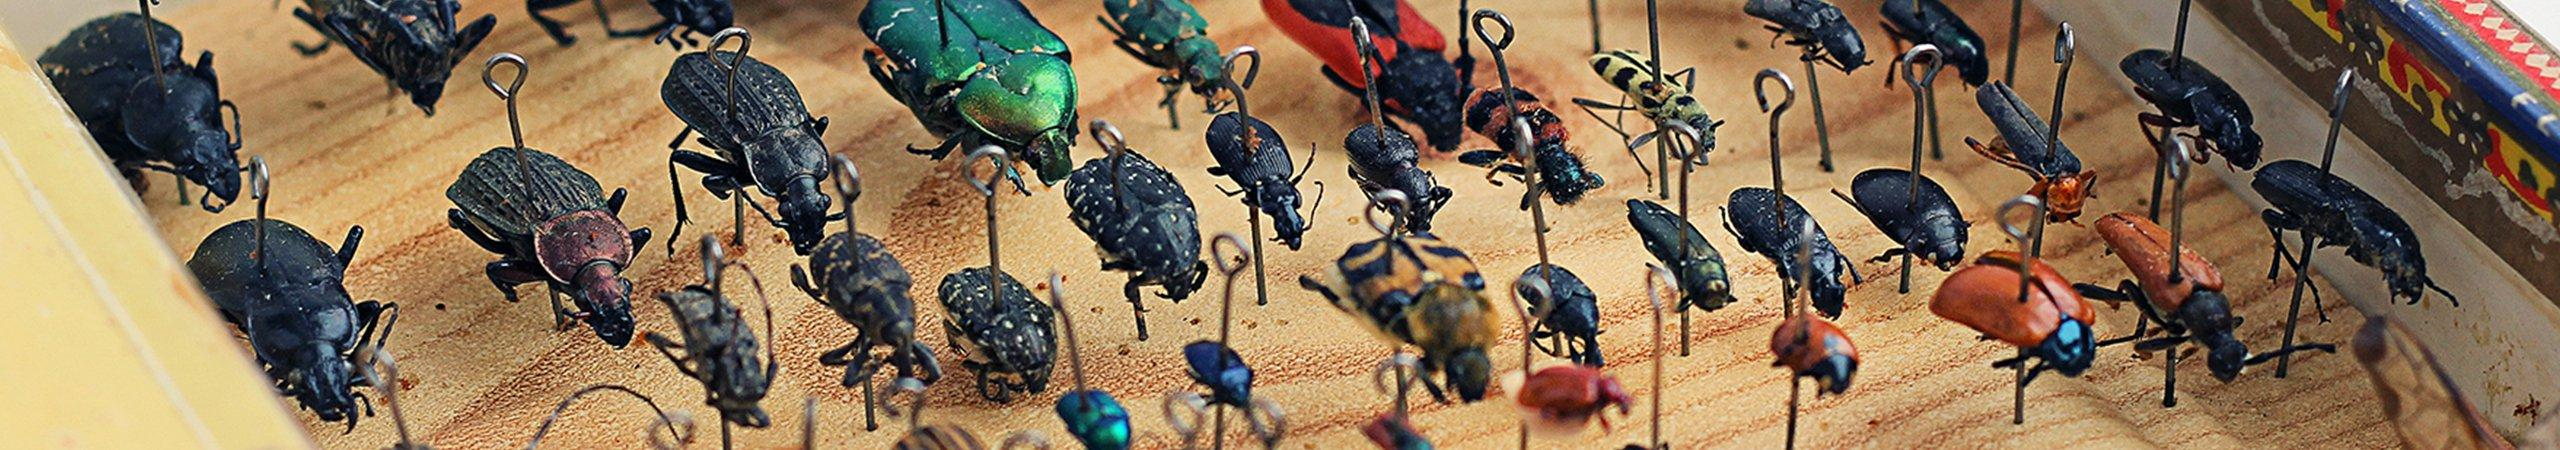 an entomology collection